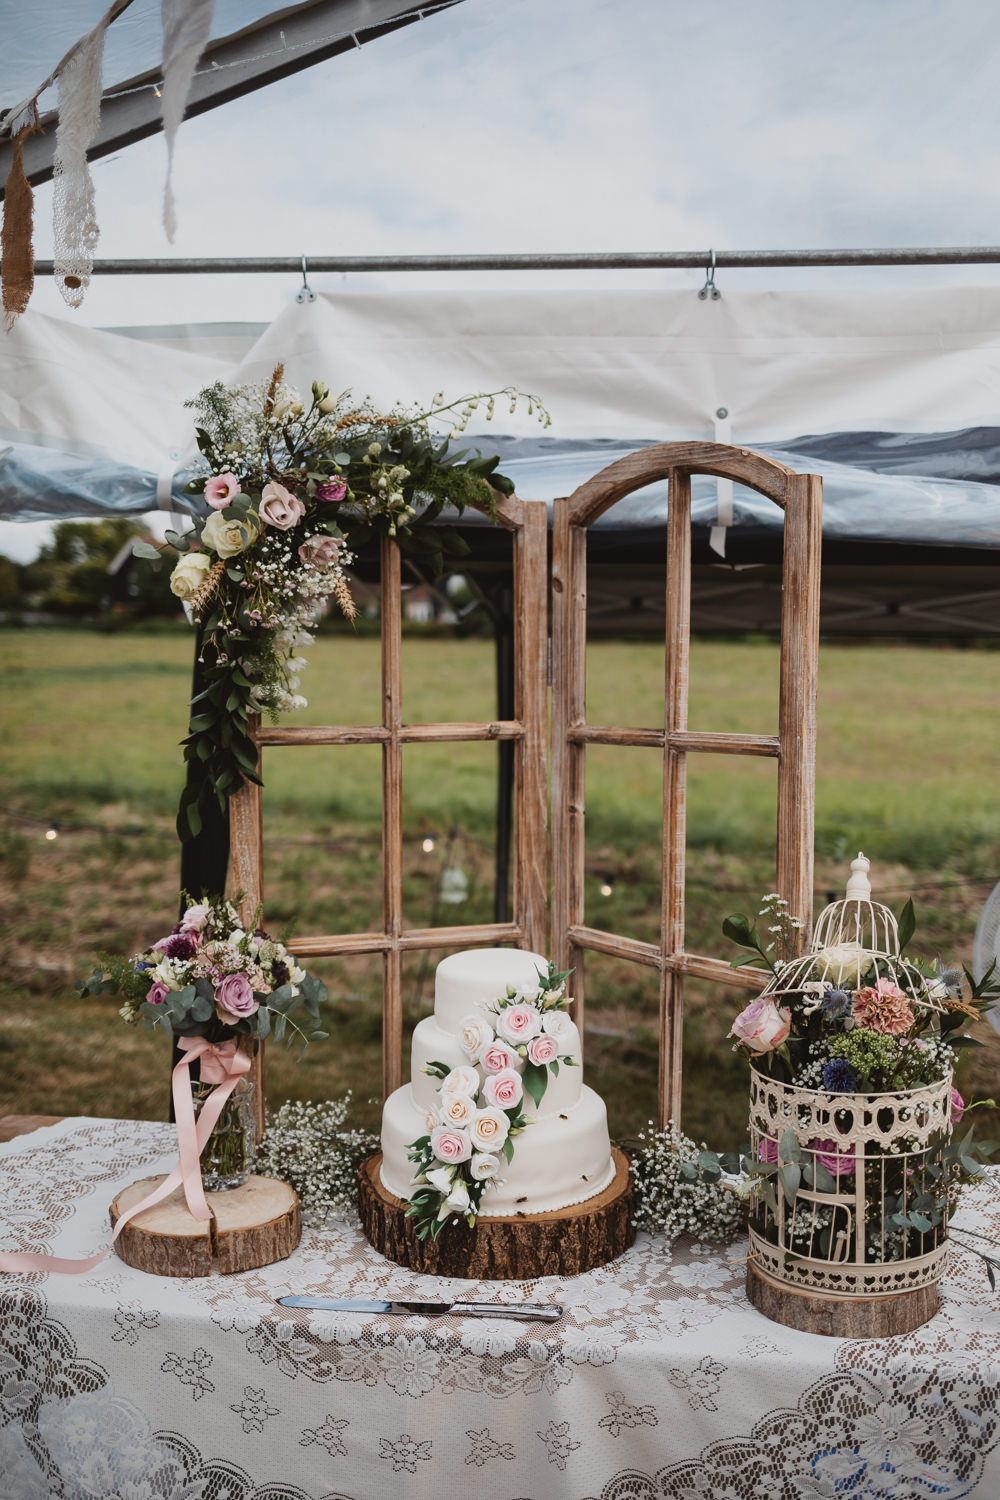 Iced Cake Sugar Flowers Log Slice Stand Table Wooden Windo Frame Flowers Clear Marquee Wedding Sarah Brookes Photography